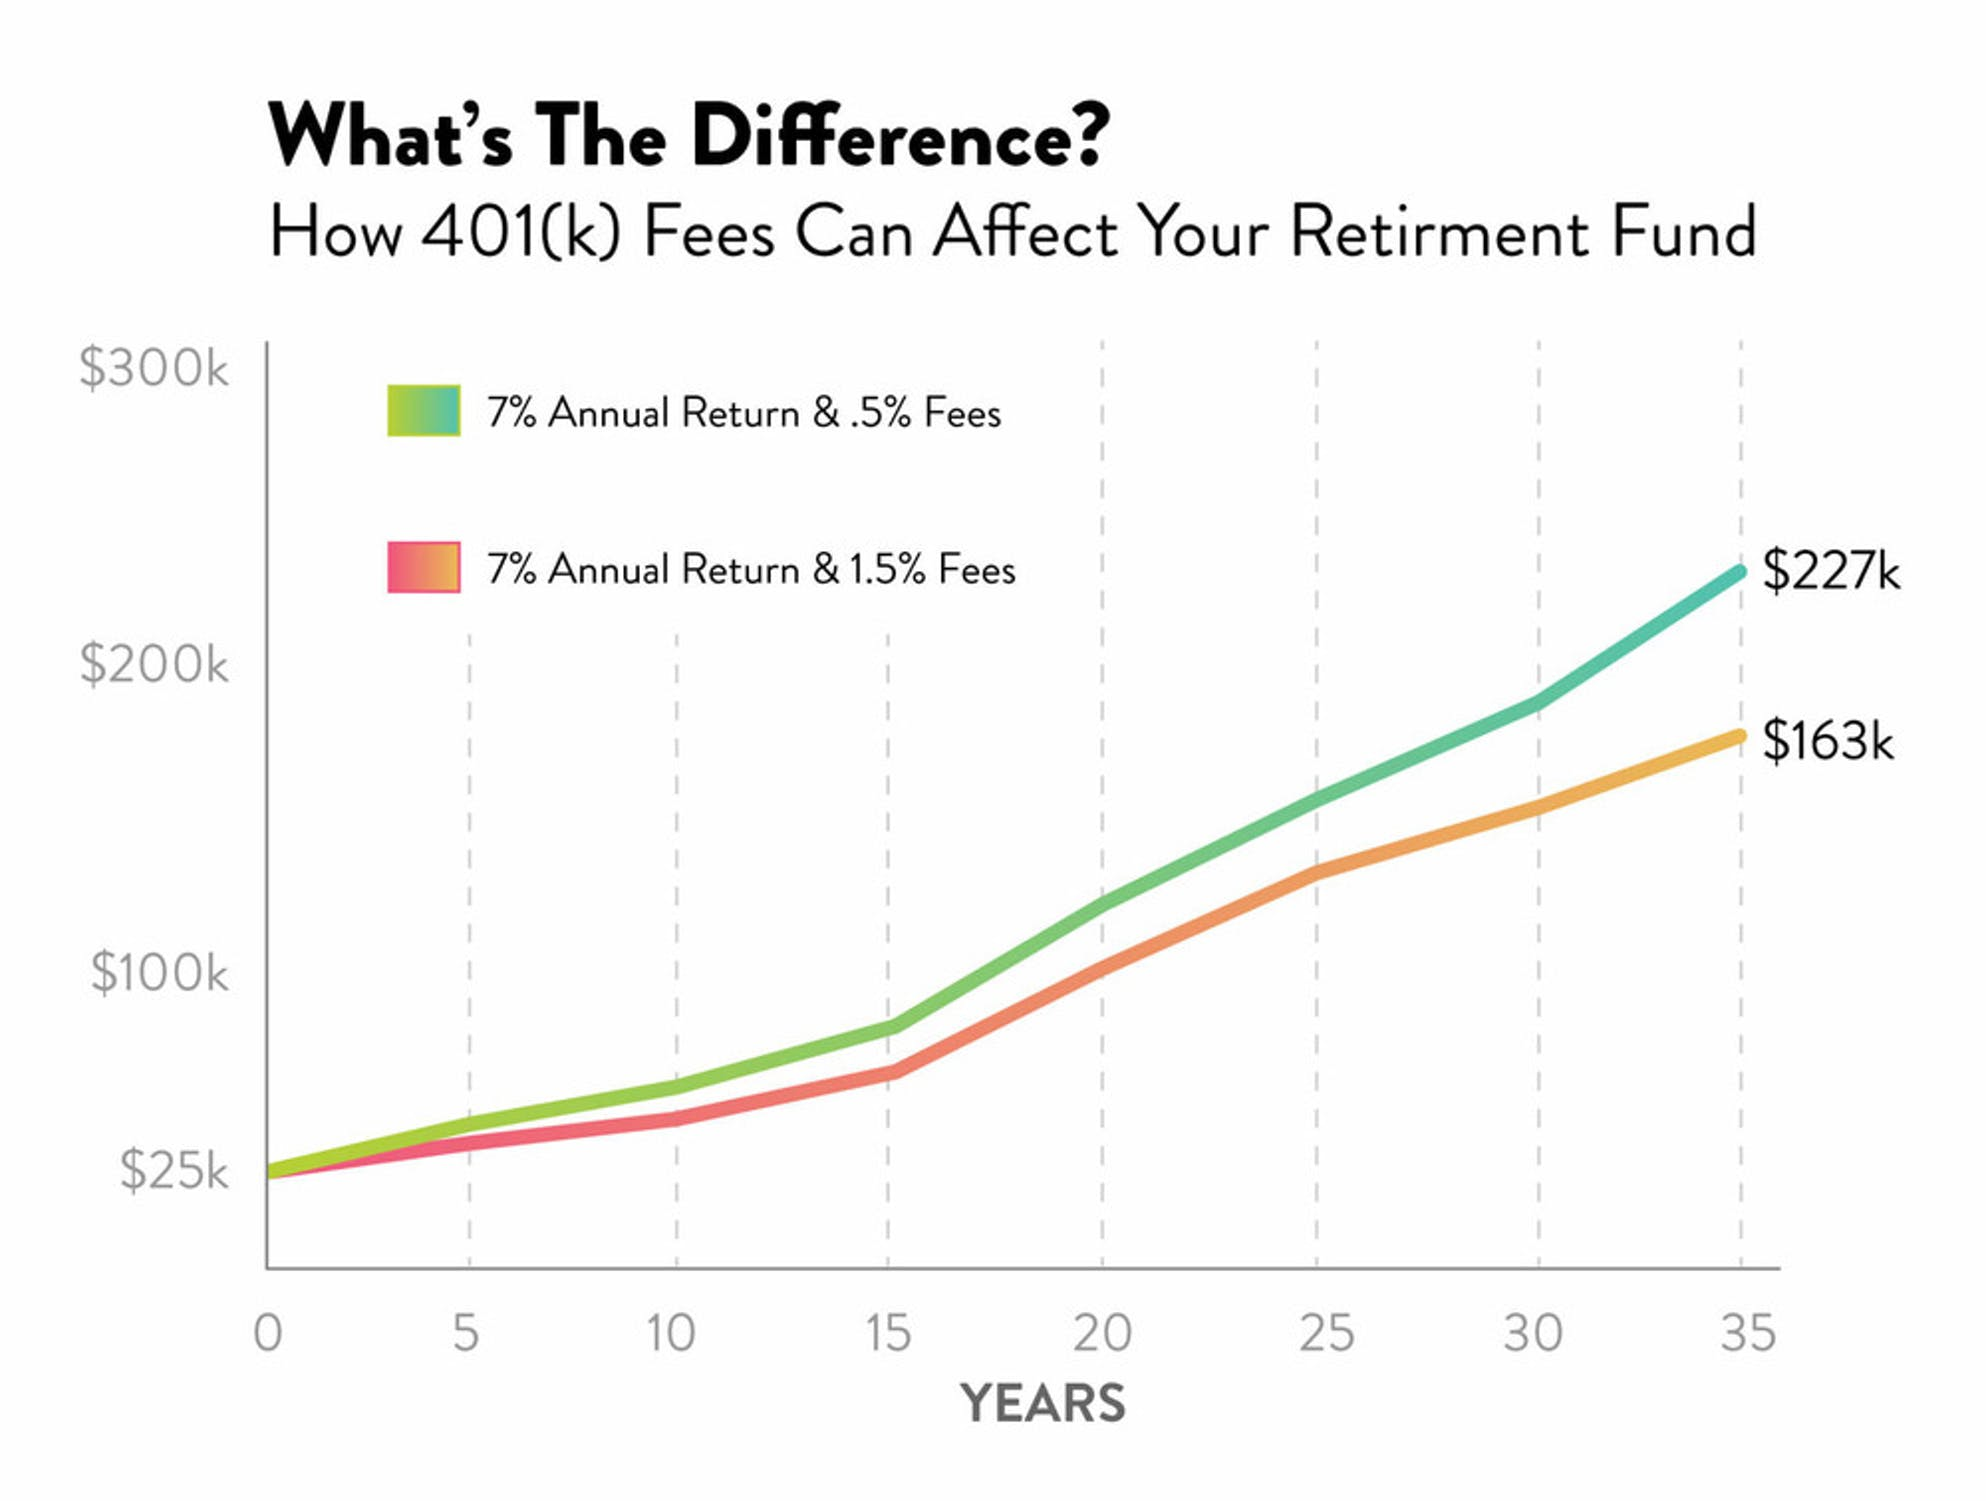 How 401(k) fees can affect your retirement fund